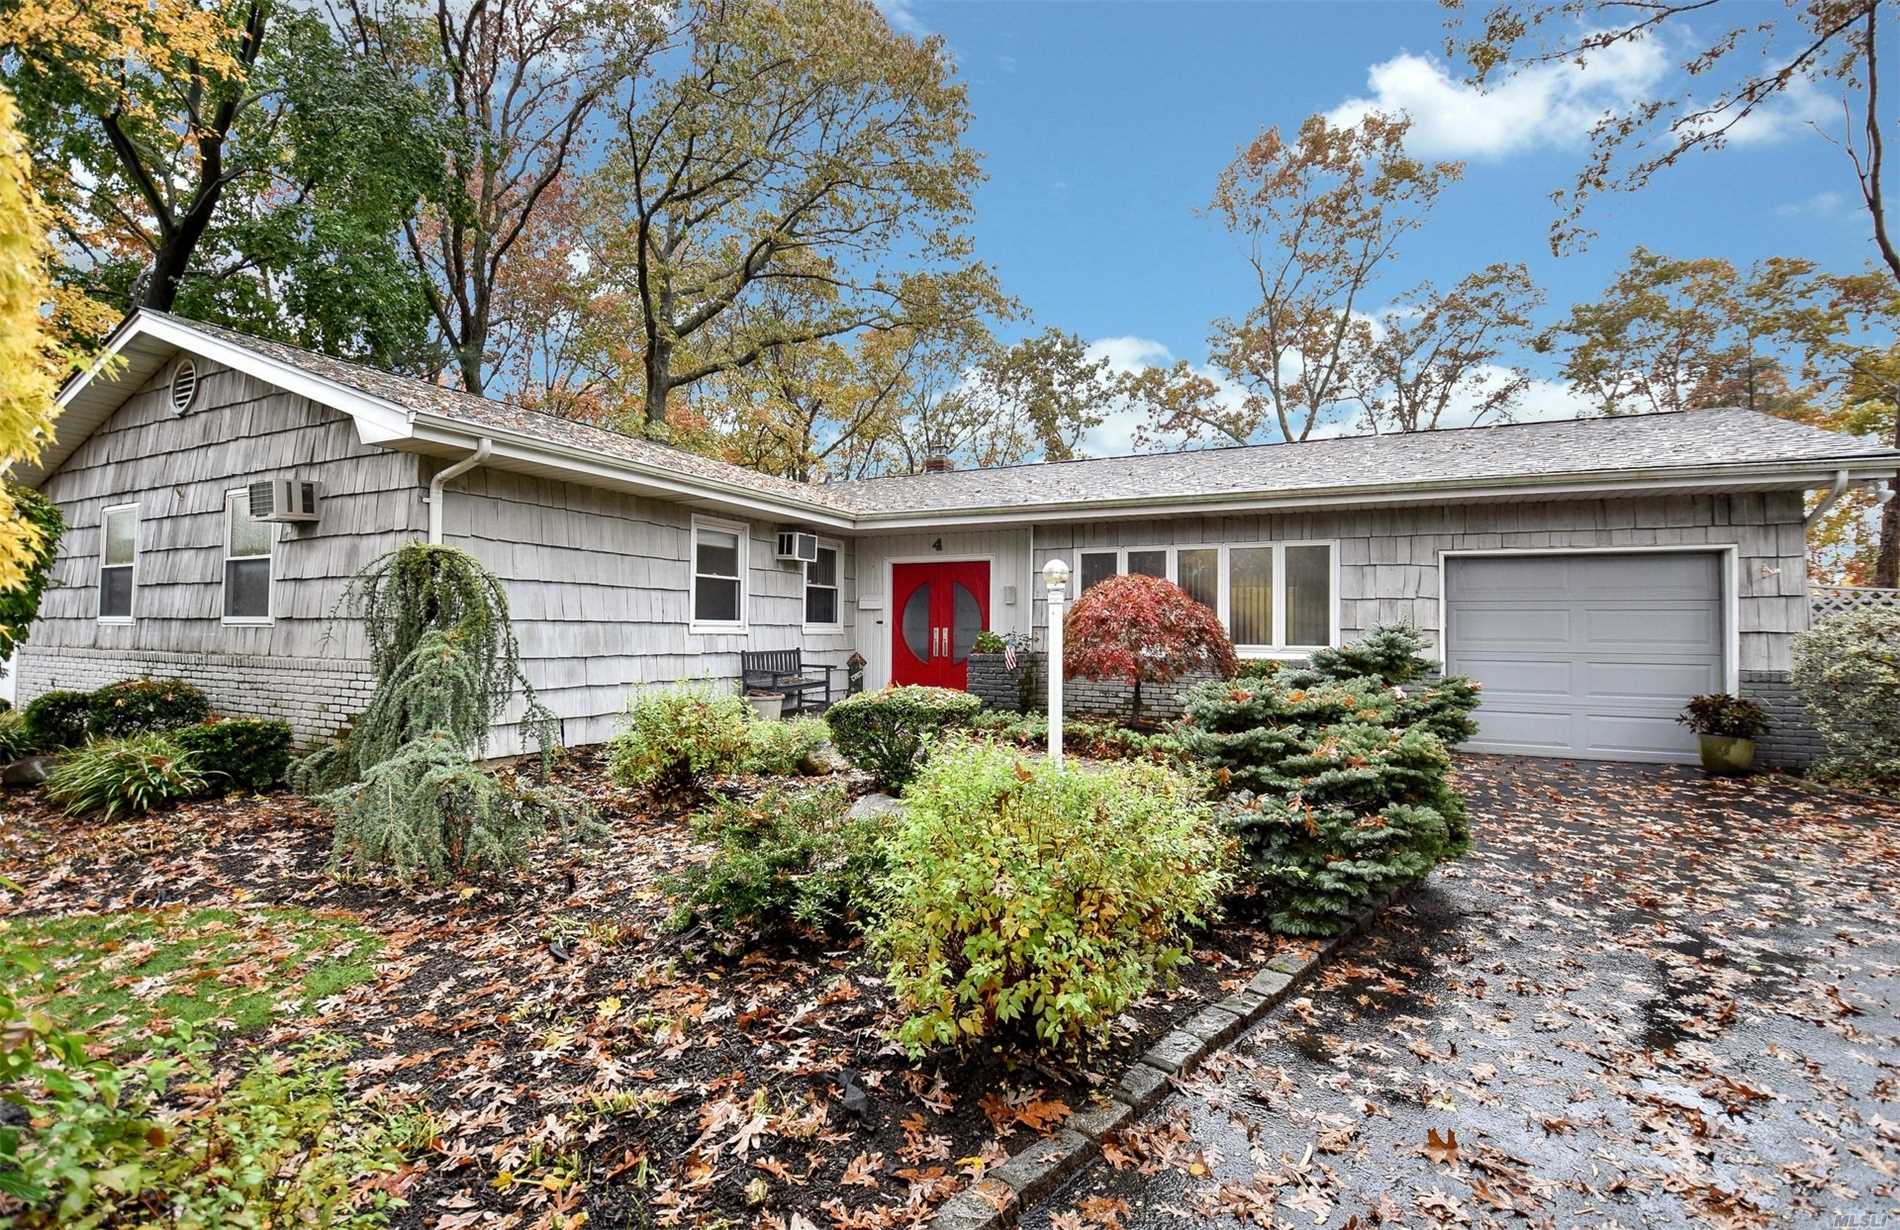 This Wonderful Open And Airy Ranch Is Perfectly Situated On A Half Of An Acre In A Perfect Cul De Sac In The Commack School District . Gas Heating, Skylight, Updated Kitchen And Baths, Prime Location. Full Basement. Part Finished For Extra Living Space And Room For Storage. Washer/Dryer